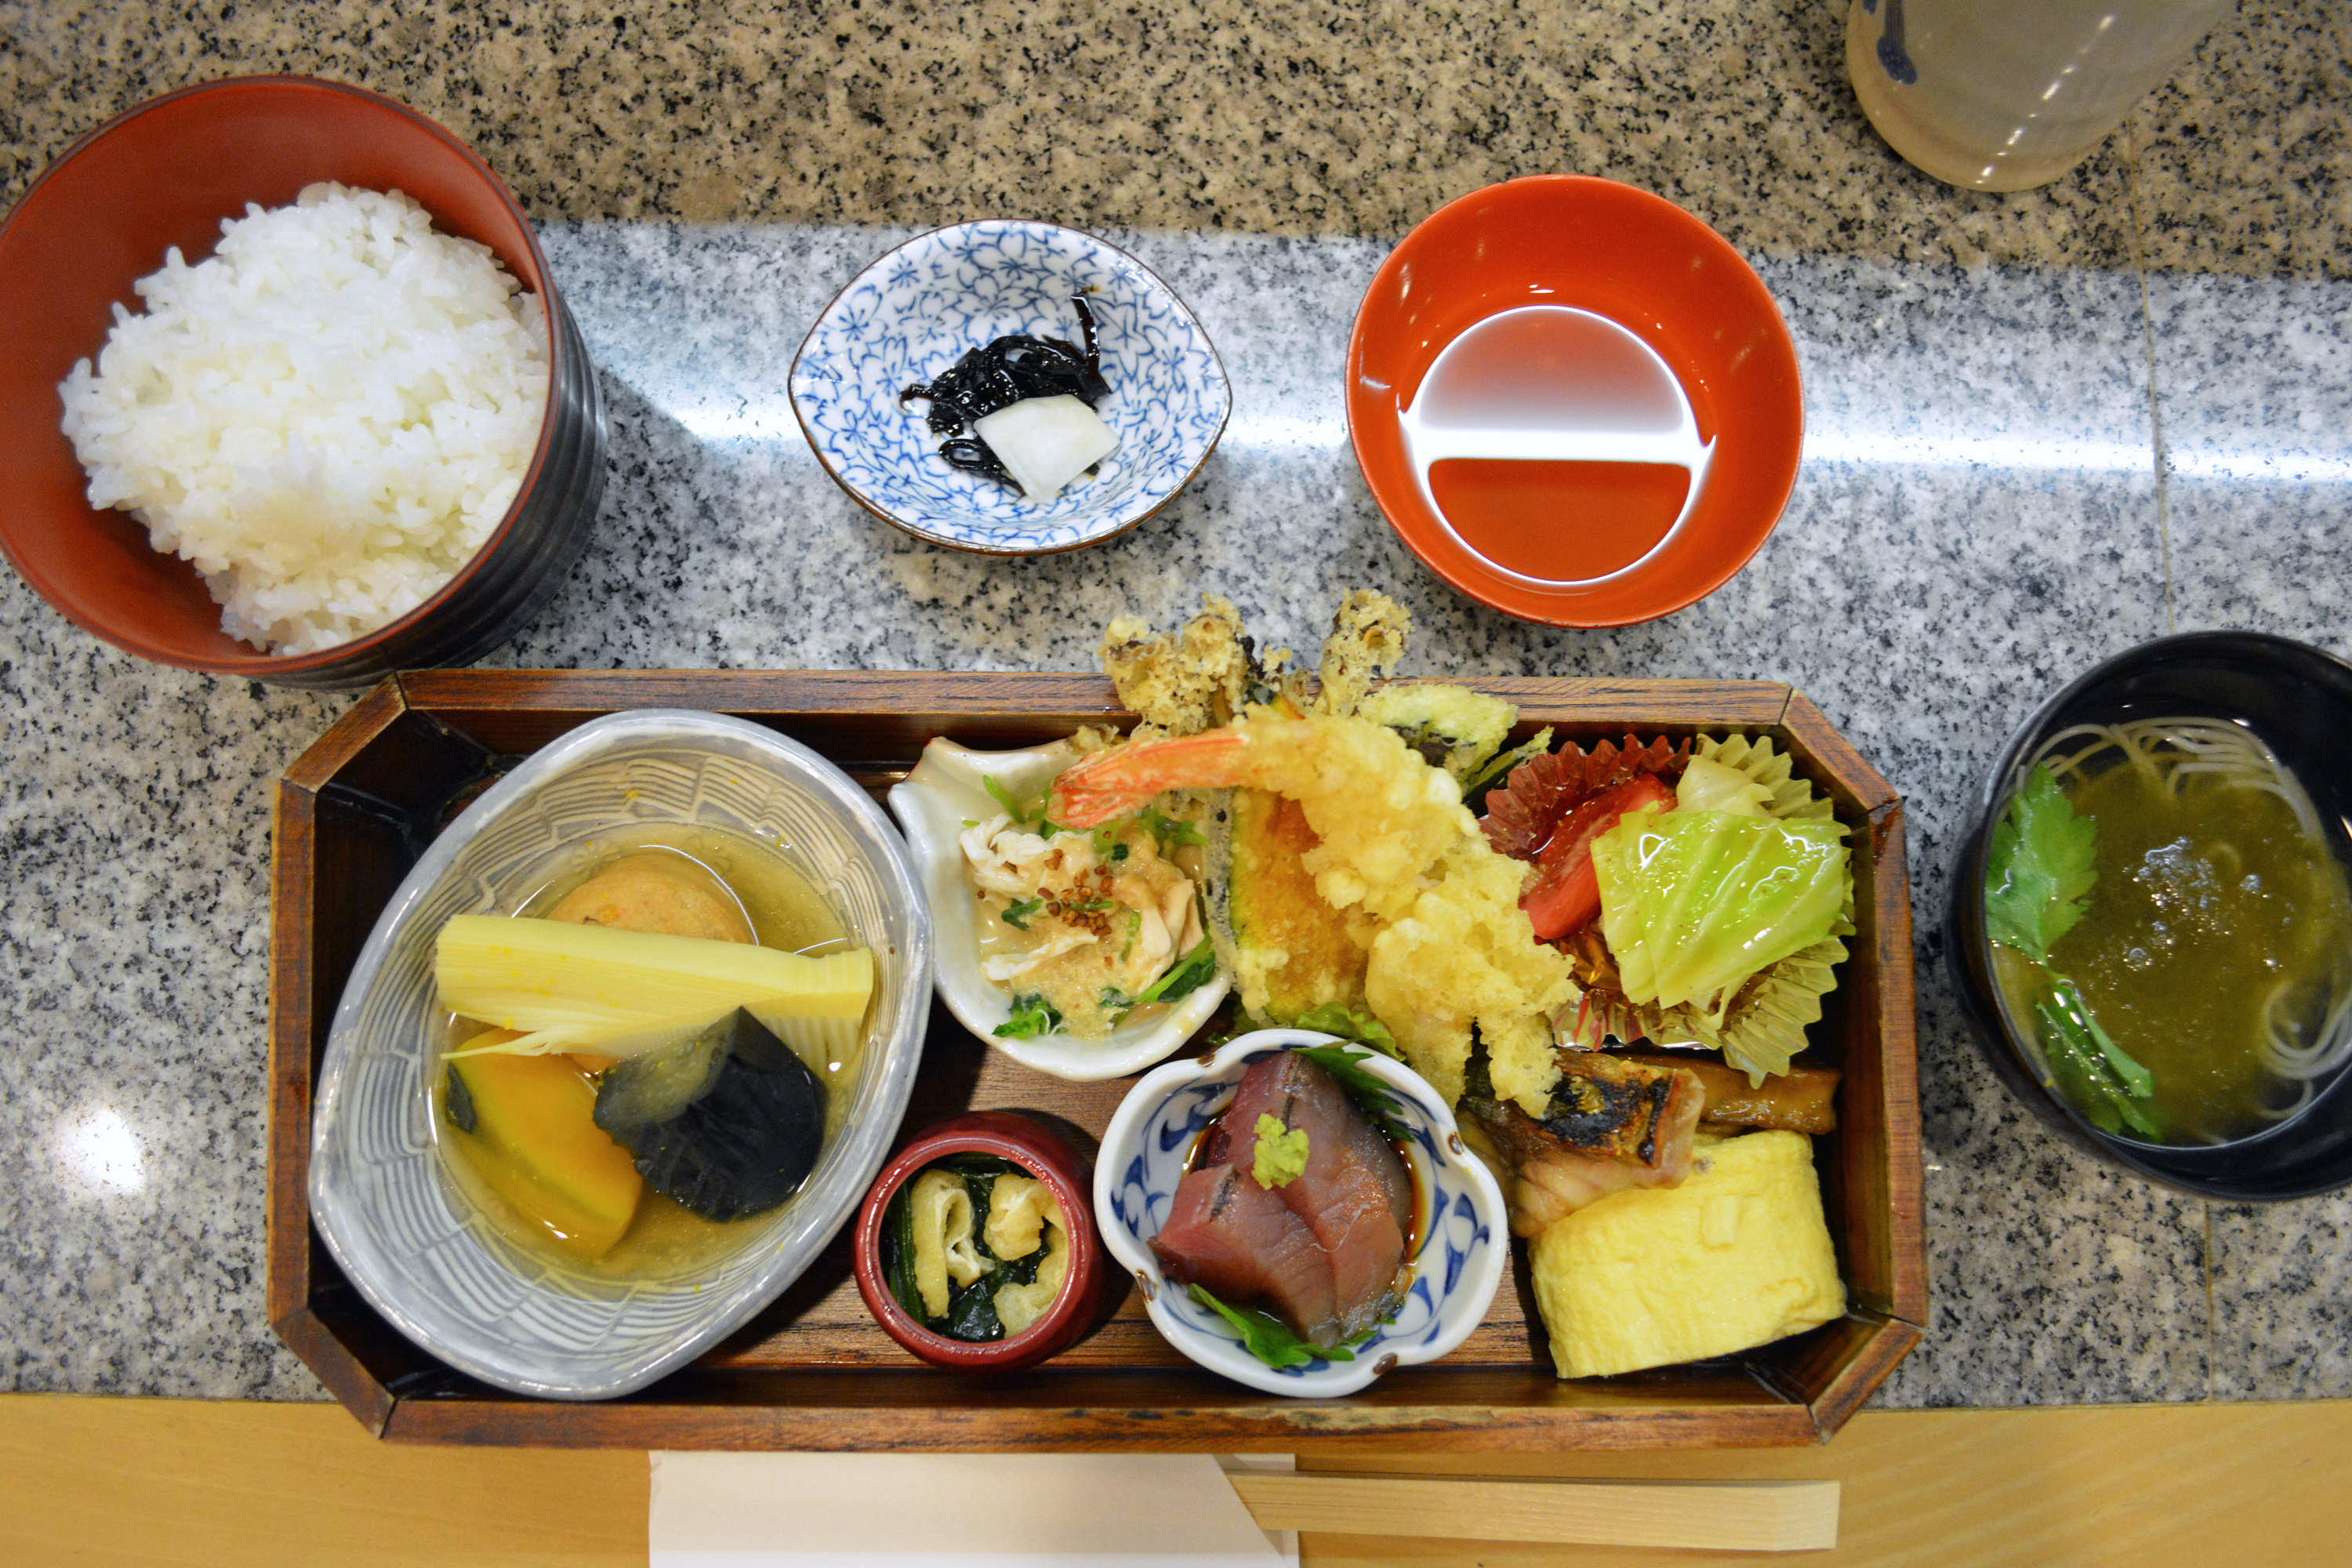 Lunch In A Box Ukon Traditional Kaiseki Cuisine Served In A Bento Box The